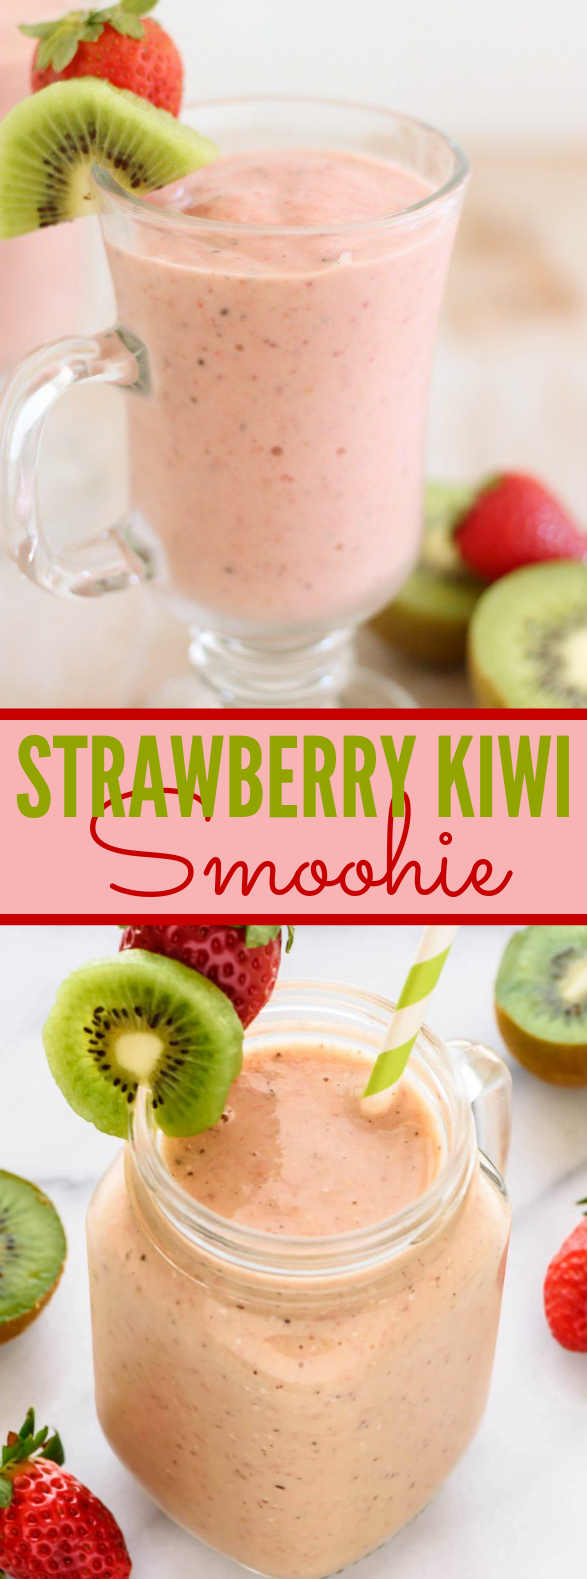 STRAWBERRY KIWI SMOOTHIE #drinks #breakfast